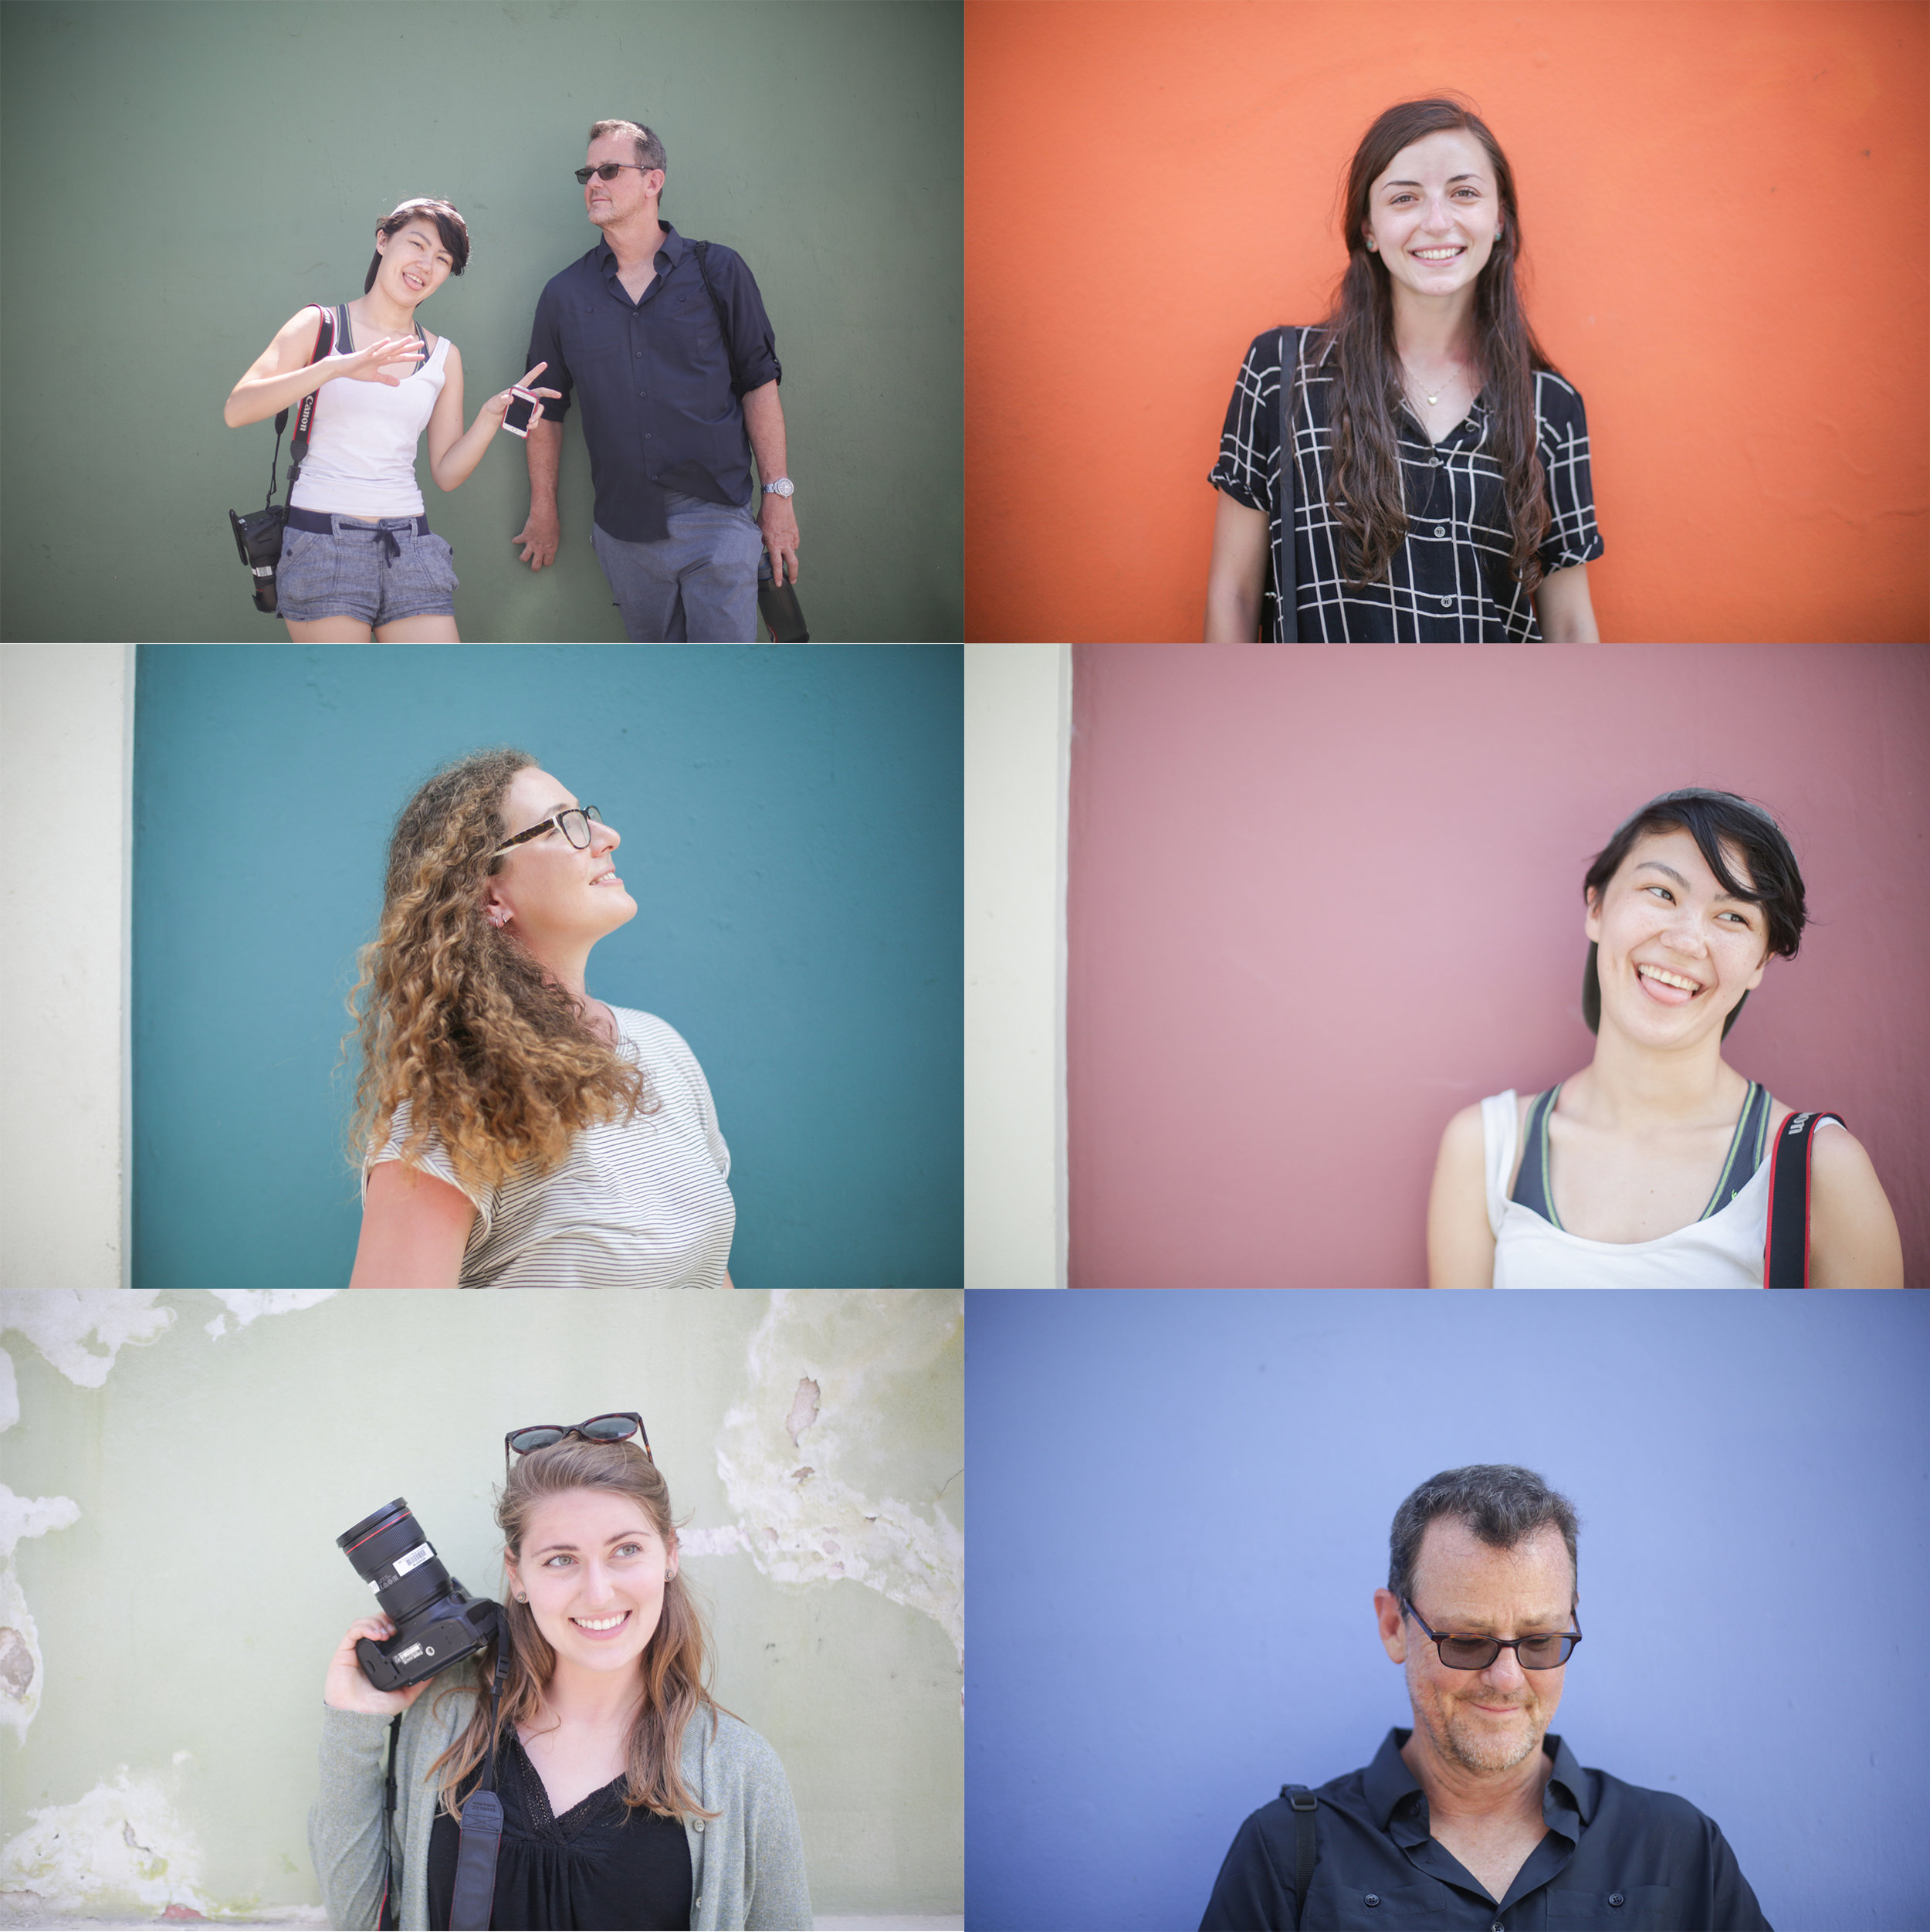 I took my MEJO584 classmates' portraits during our trip to Puerto Rico March 9 to March 17, 2018. These portraits were specifically taken in Old San Juan.